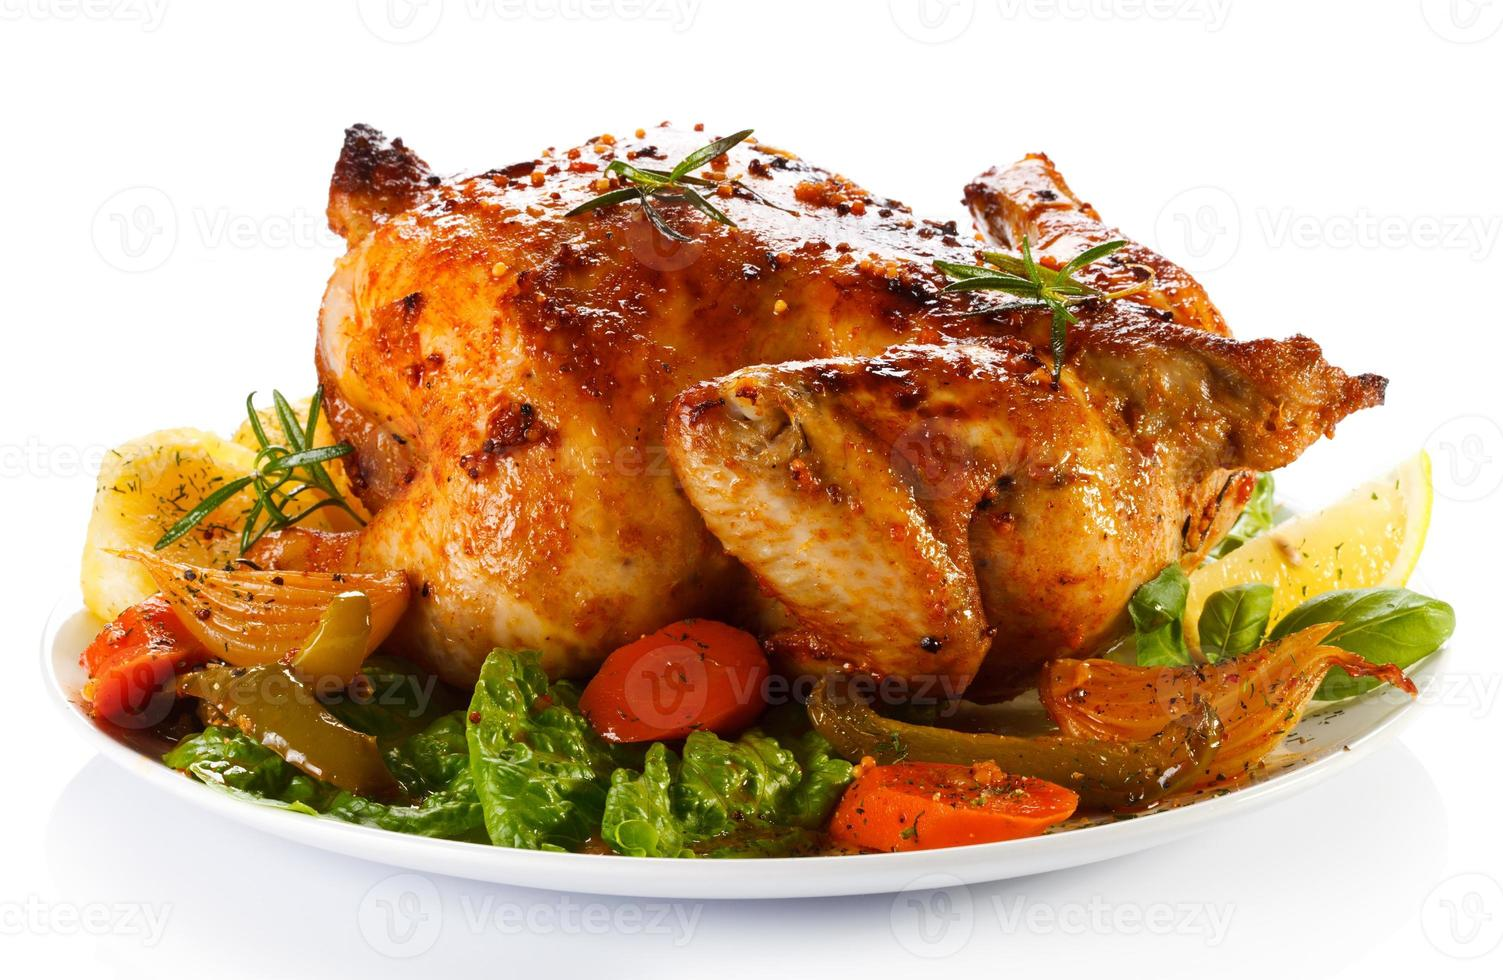 Roasted chicken and vegetables photo